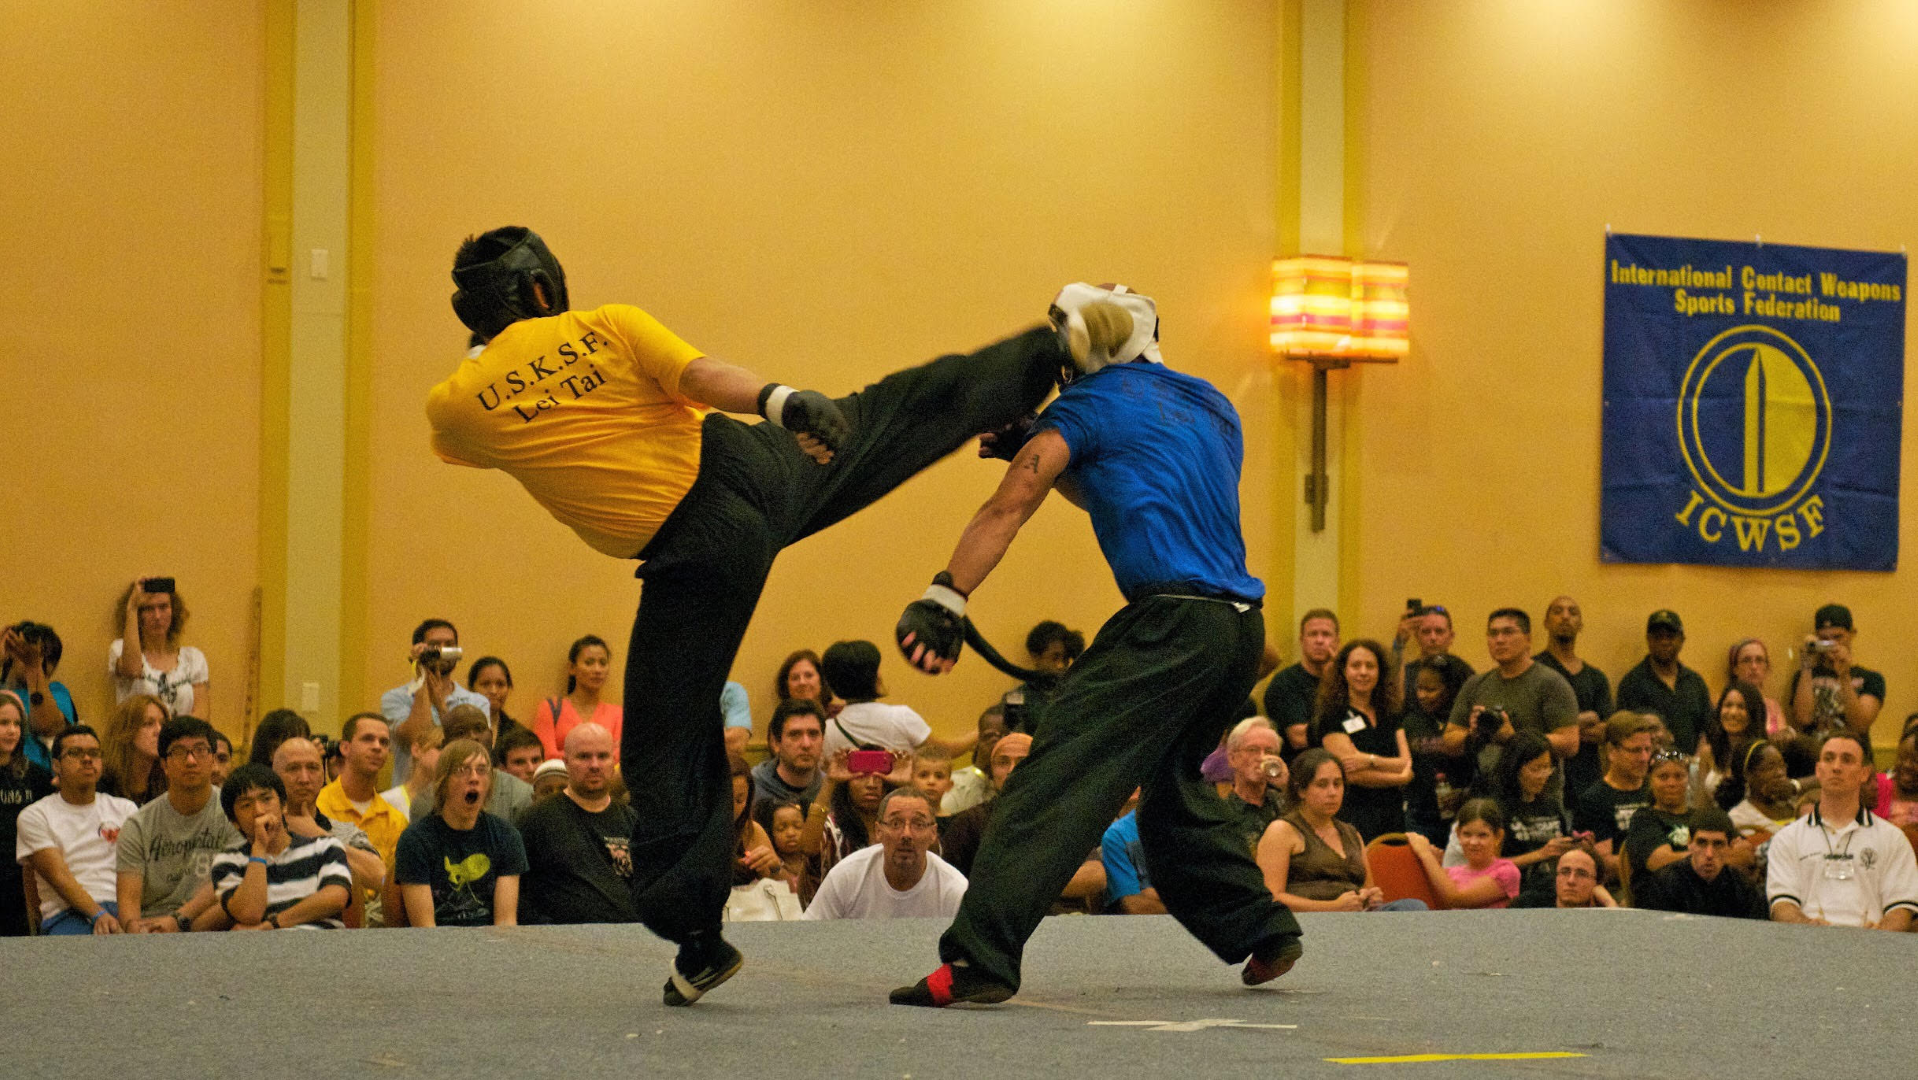 How to Choose the Best Style of Martial Arts for Me